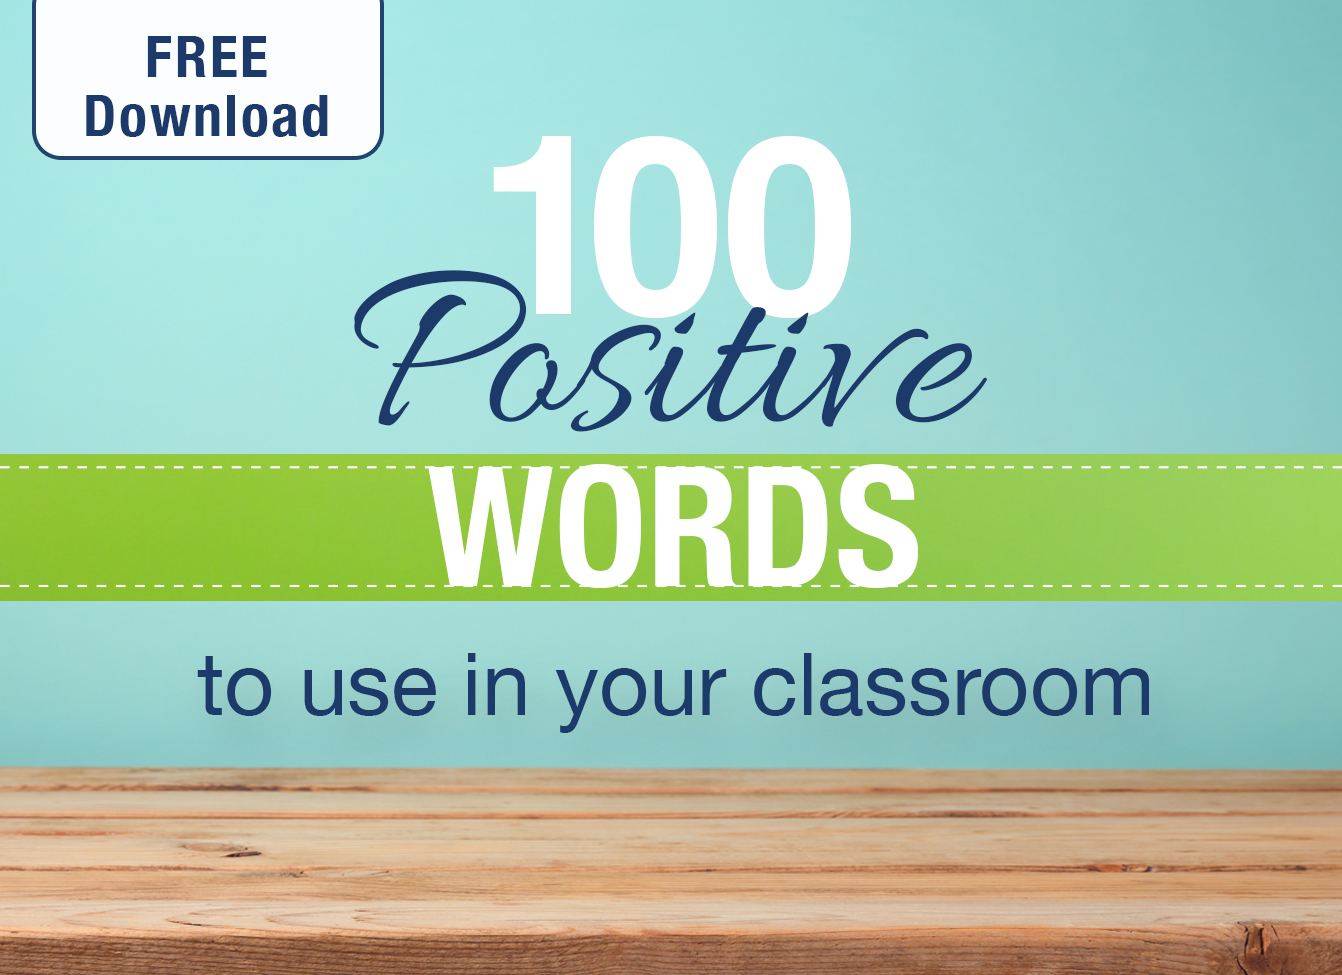 100 Positive Words to Use In Your Classroom Free Download